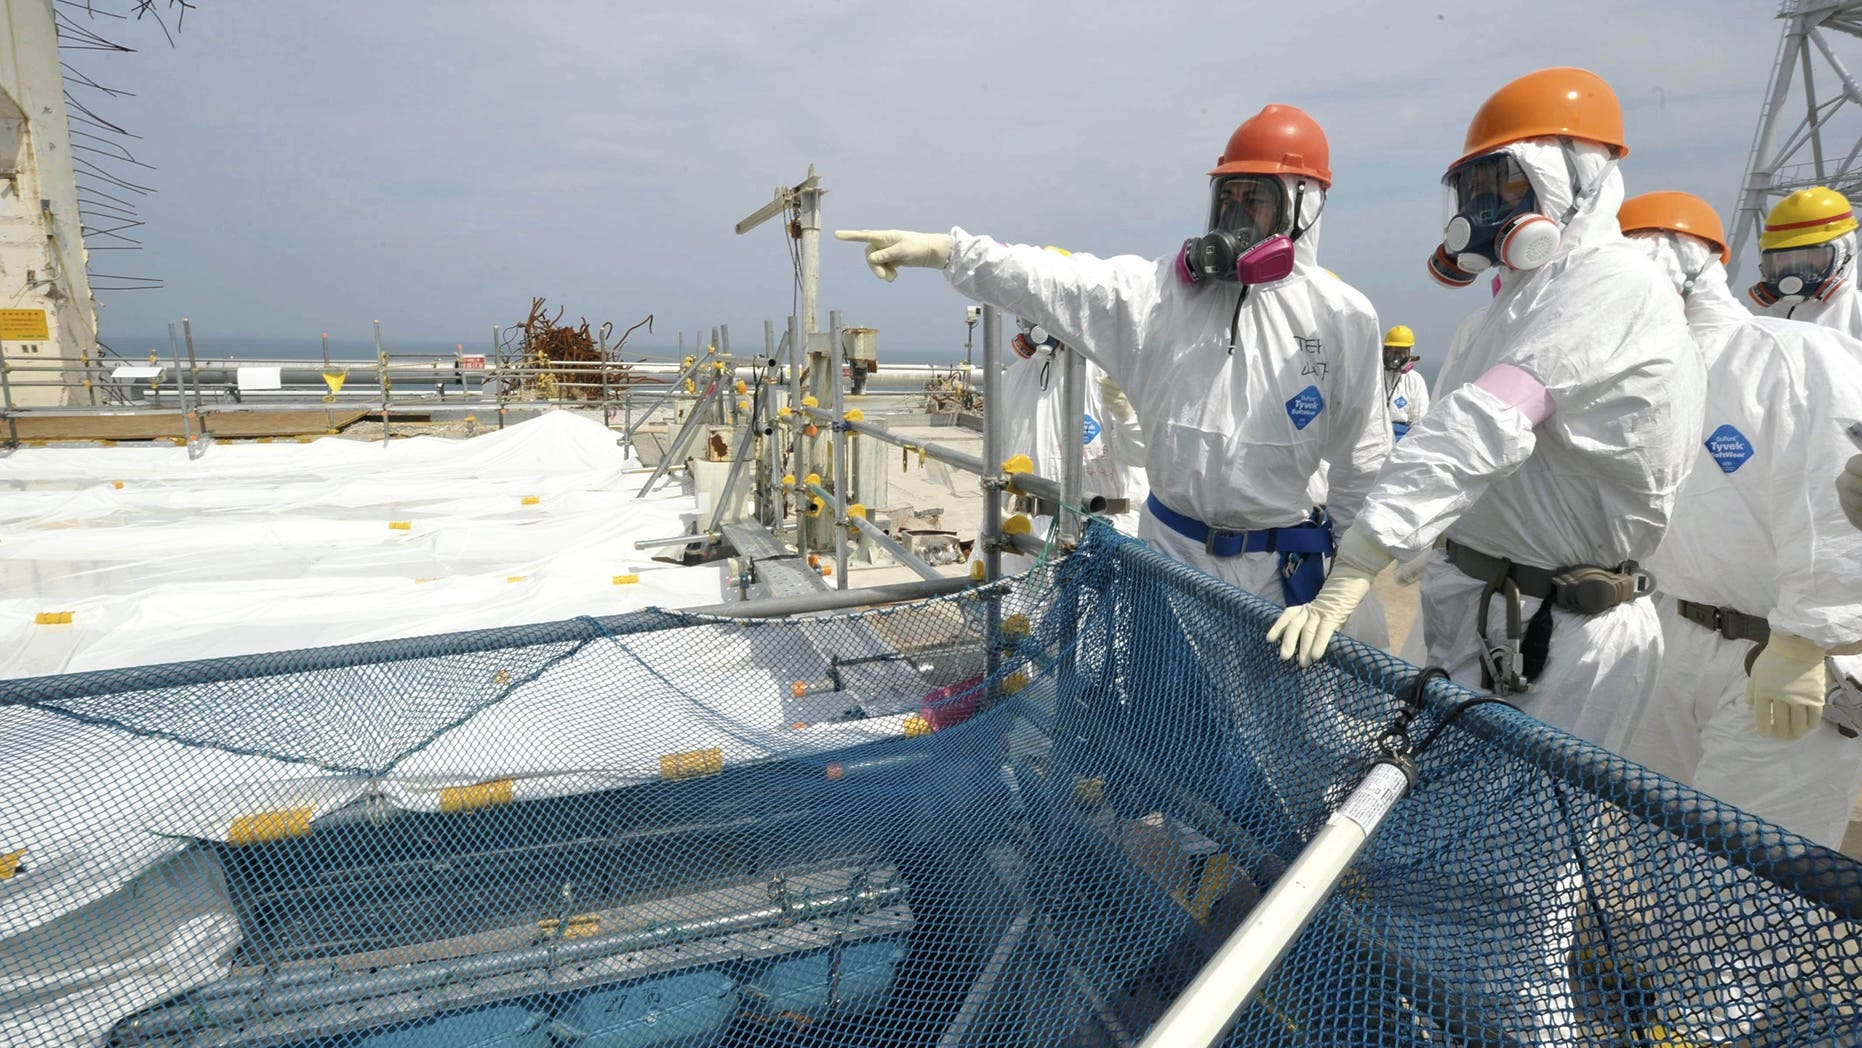 May 26, 2012: Japan's Environment and Nuclear Minister Goshi Hosono, second from left, inspects a pool containing spent fuel rods inside the No. 4 reactor building at Tokyo Electric Power Co. 's tsunami-crippled Fukushima Dai-ichi nuclear power plant in Okuma, Fukushima Prefecture, Japan, Saturday, May 26, 2012. The pool, located at the top of the building above the reactor, remains one of the plant's biggest risks due to its vulnerability to earthquakes. (AP Photo/Toshiaki Shimizu, Japan Pool) JAPAN OUT